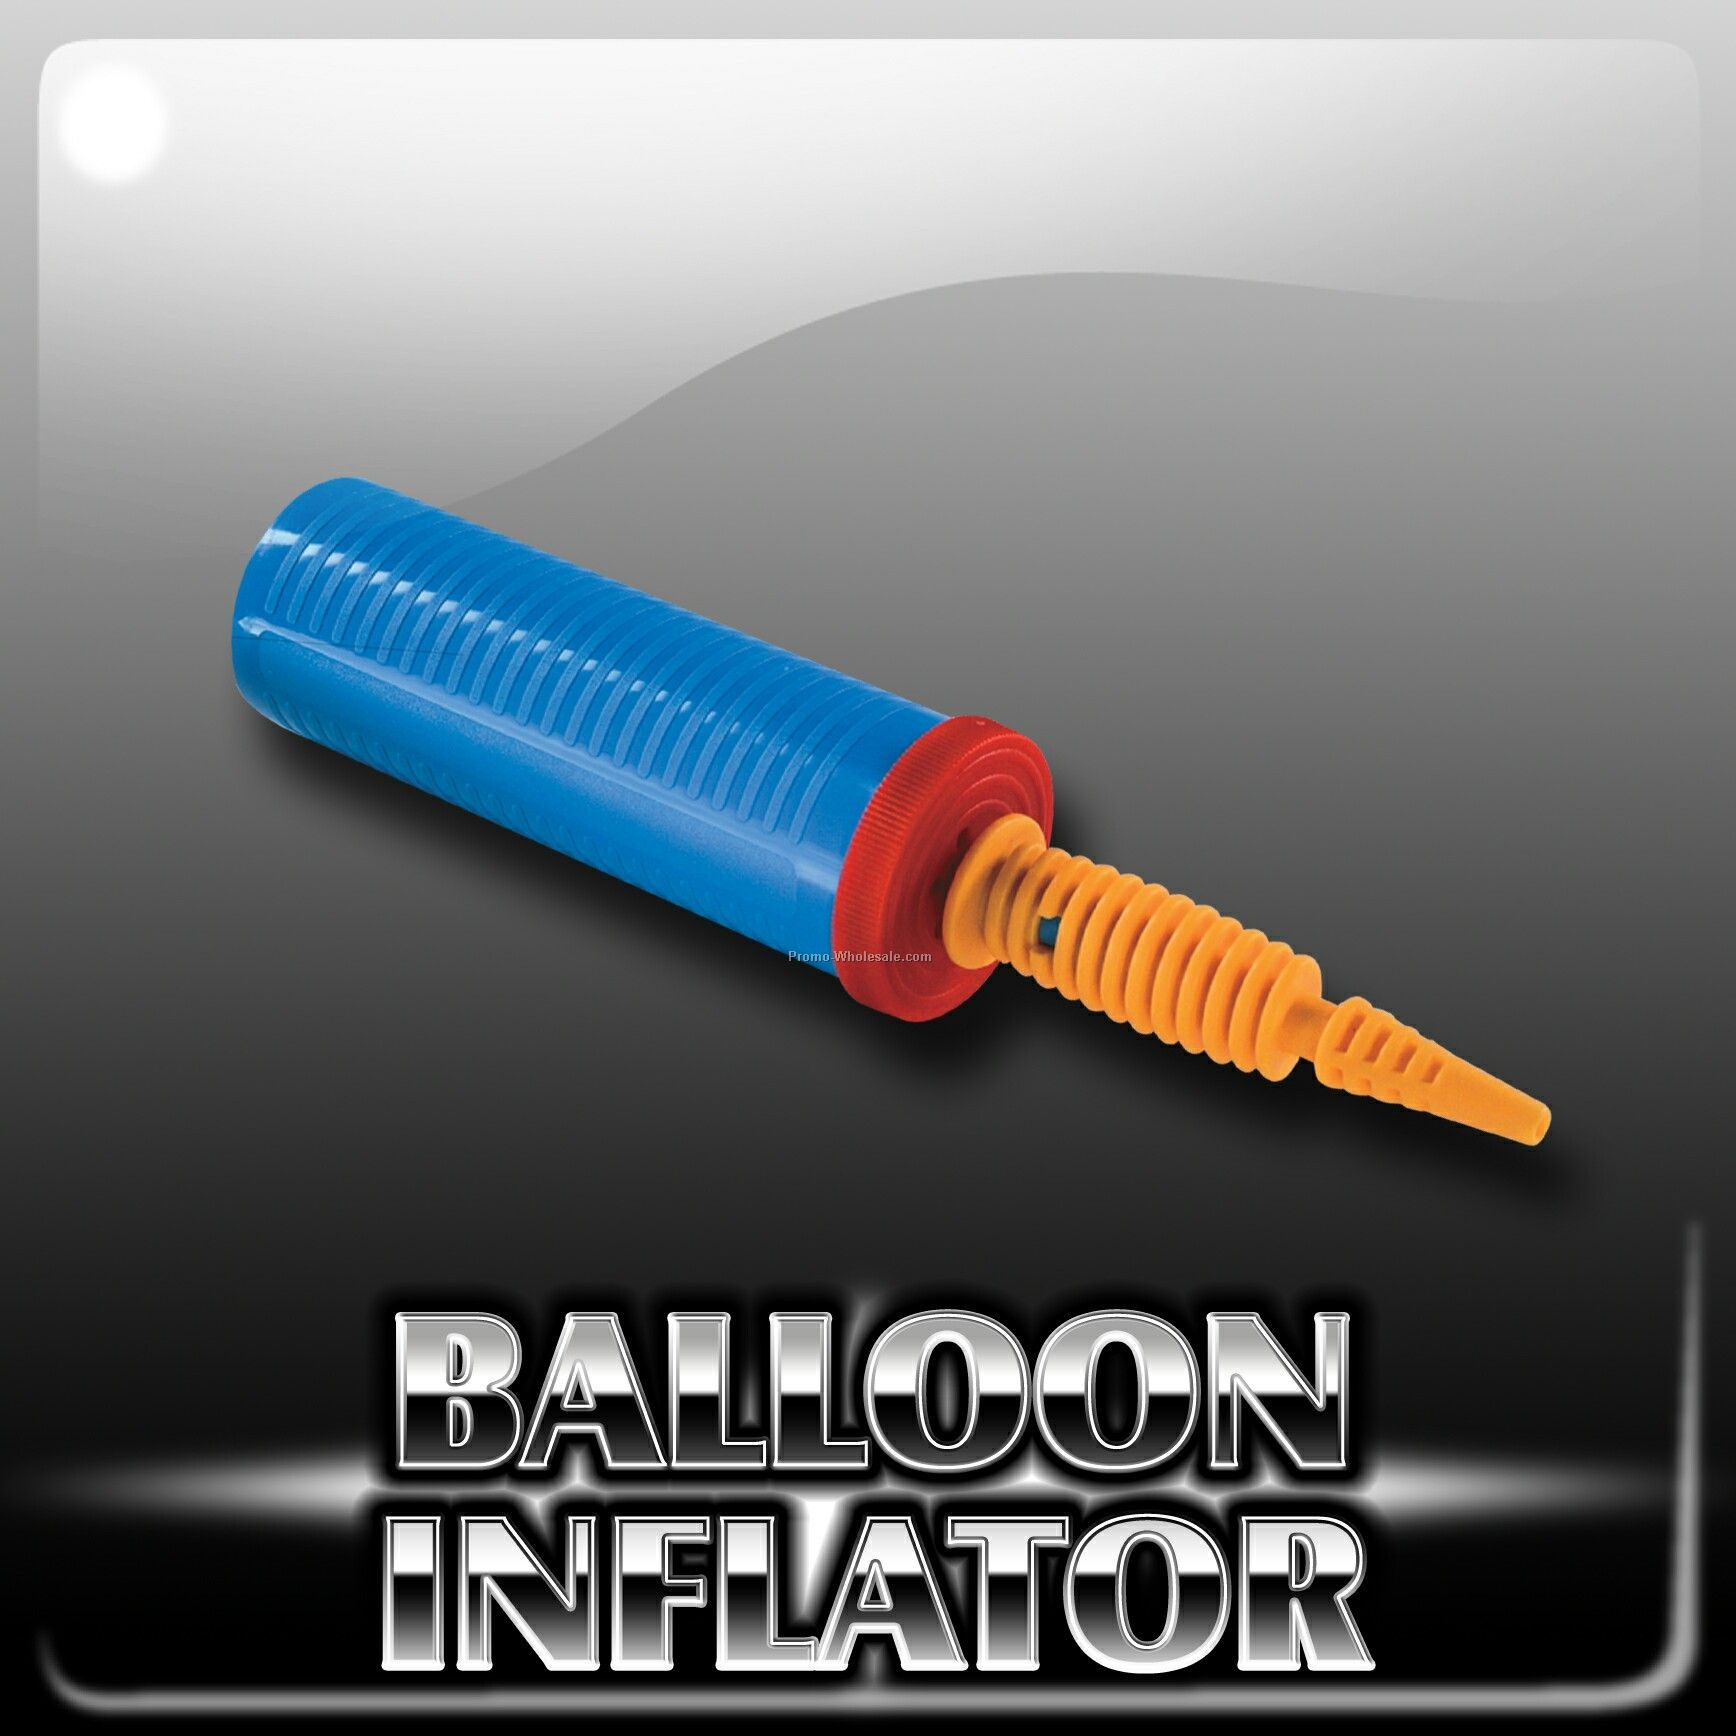 Hand-pump Balloon Inflator